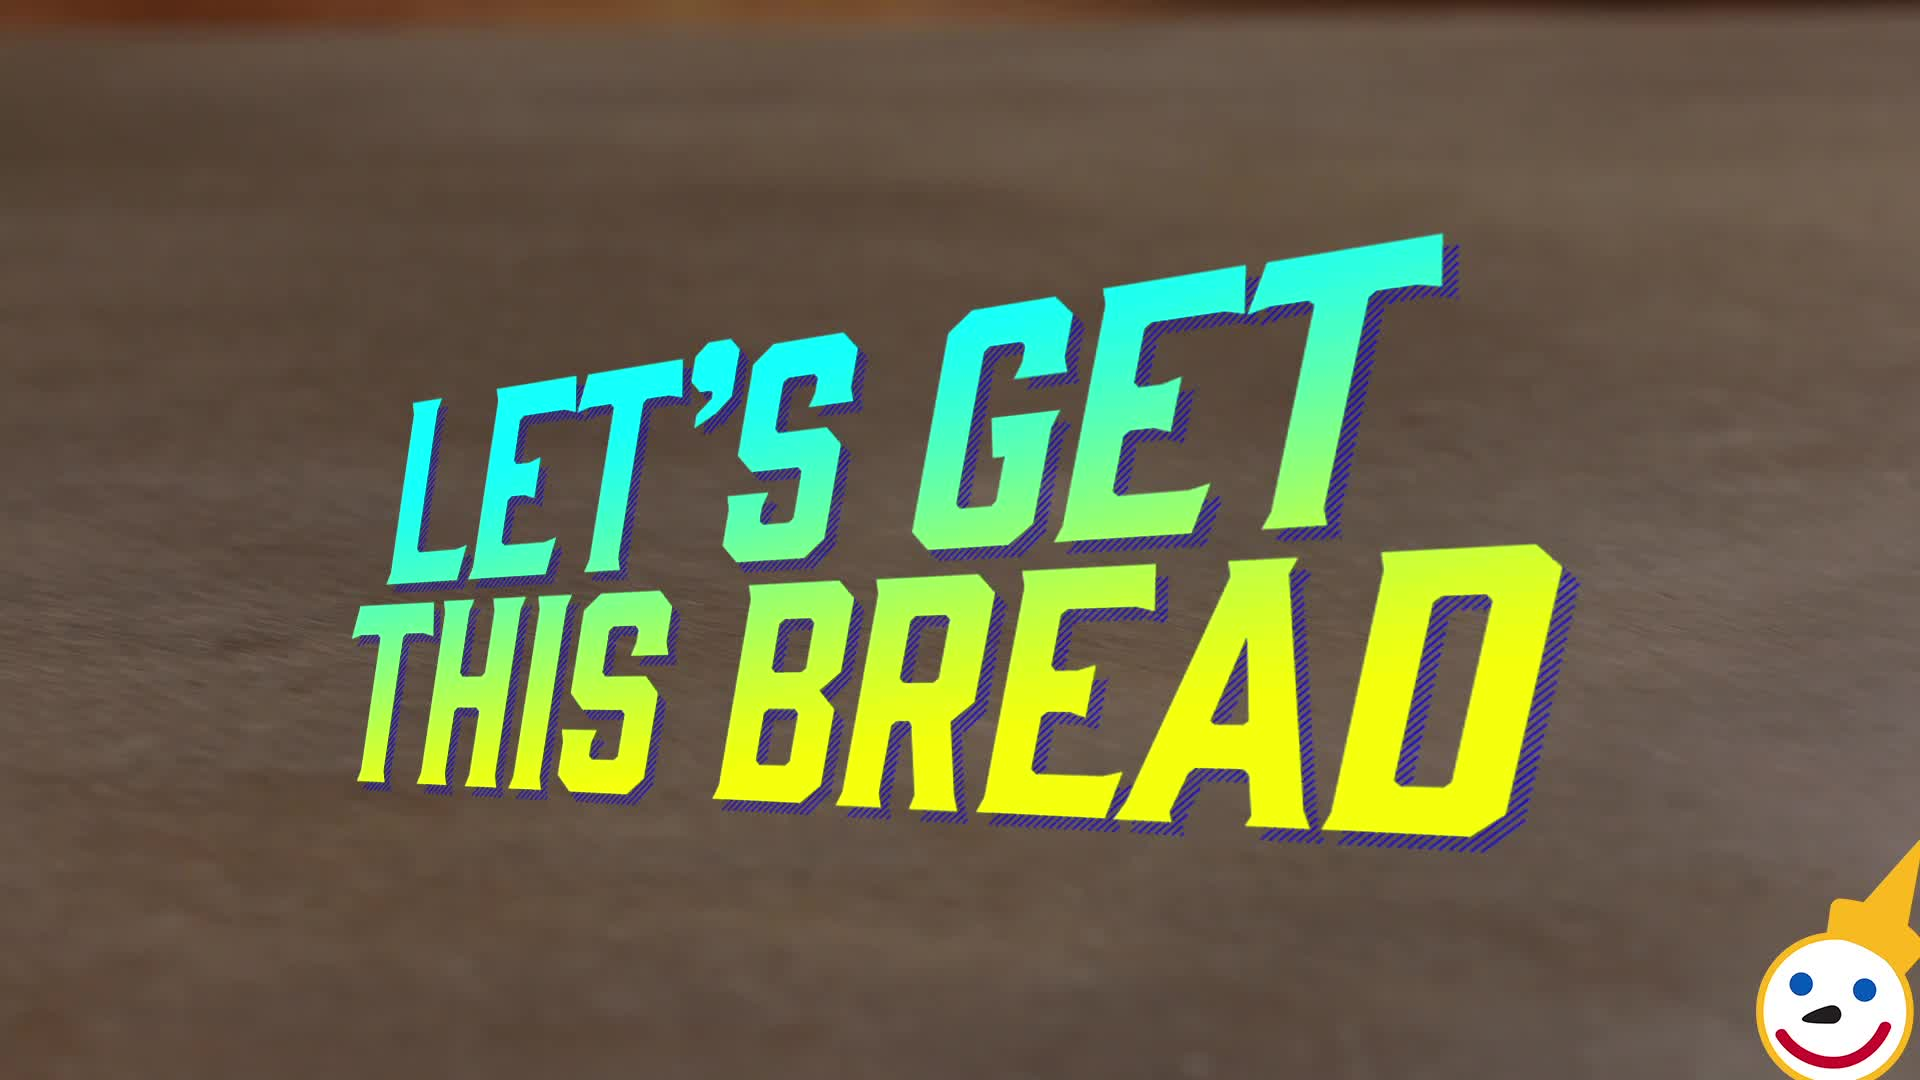 bread, cash, dollar bills, earn, hungry, jack in the box, let's get this bread, make it rain, money, paycheck, sandwich, sourdough, work, Money Lets Get This Bread Hungry GIFs